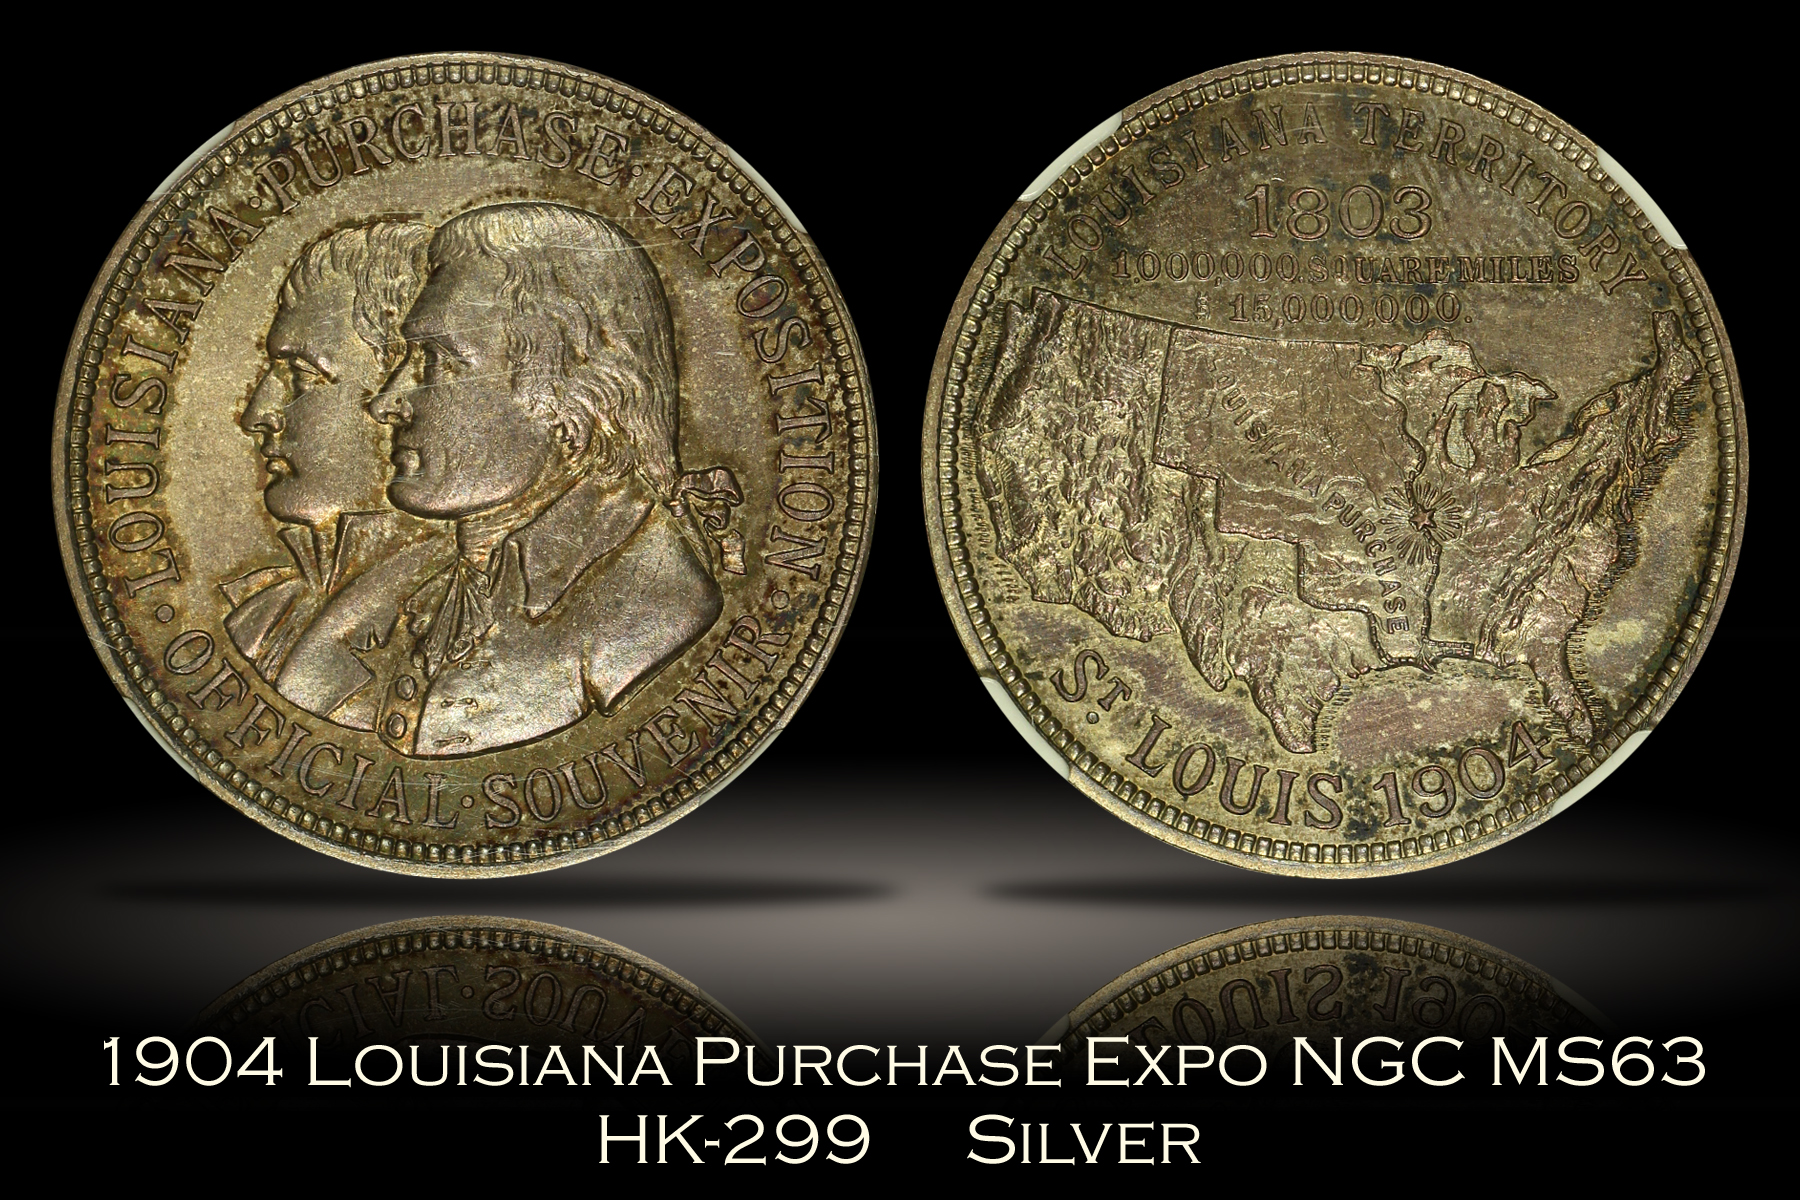 1904 Louisiana Purchase Expo Official Medal HK-299 NGC MS63